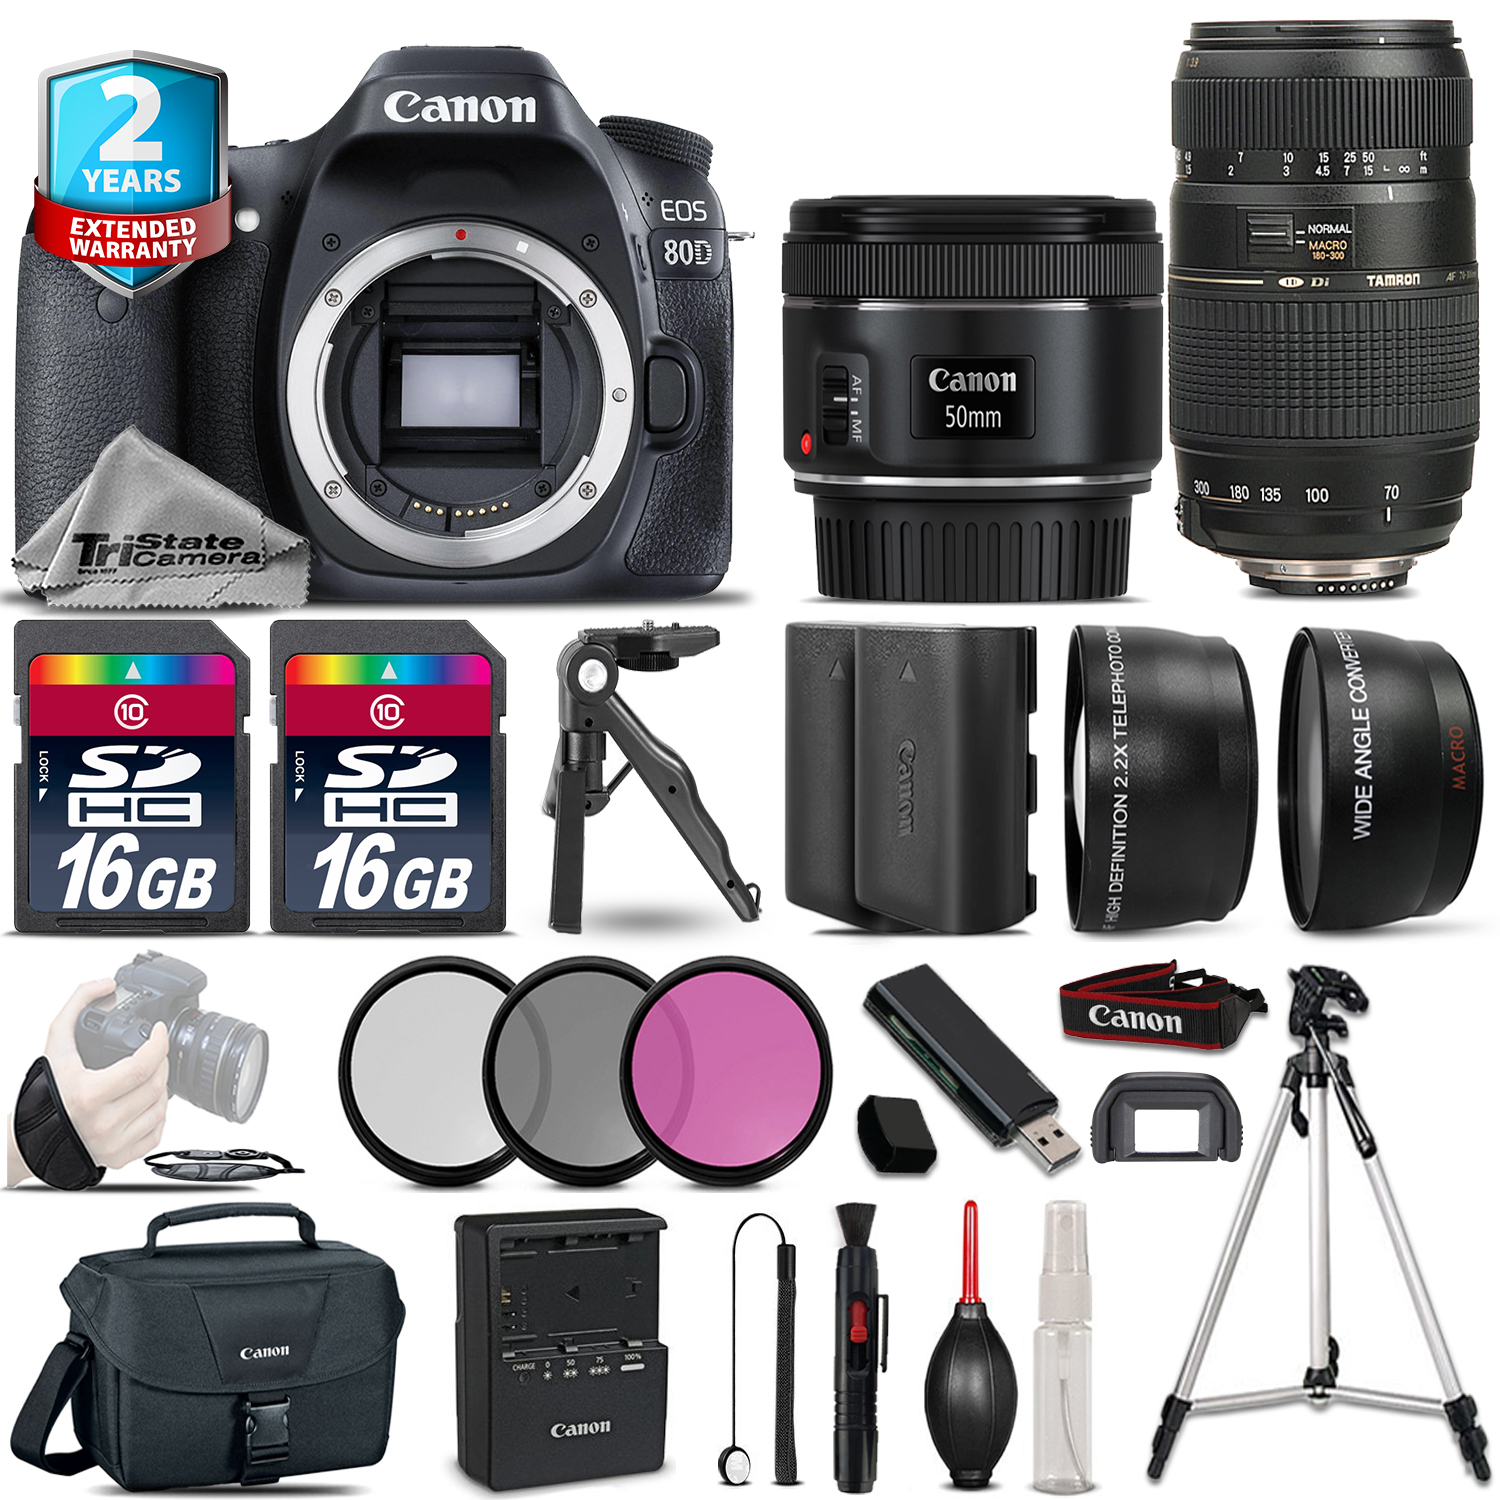 EOS 80D Camera + 50mm 1.8 STM & 70-300mm + Extra Battery + 2yr Warranty *FREE SHIPPING*